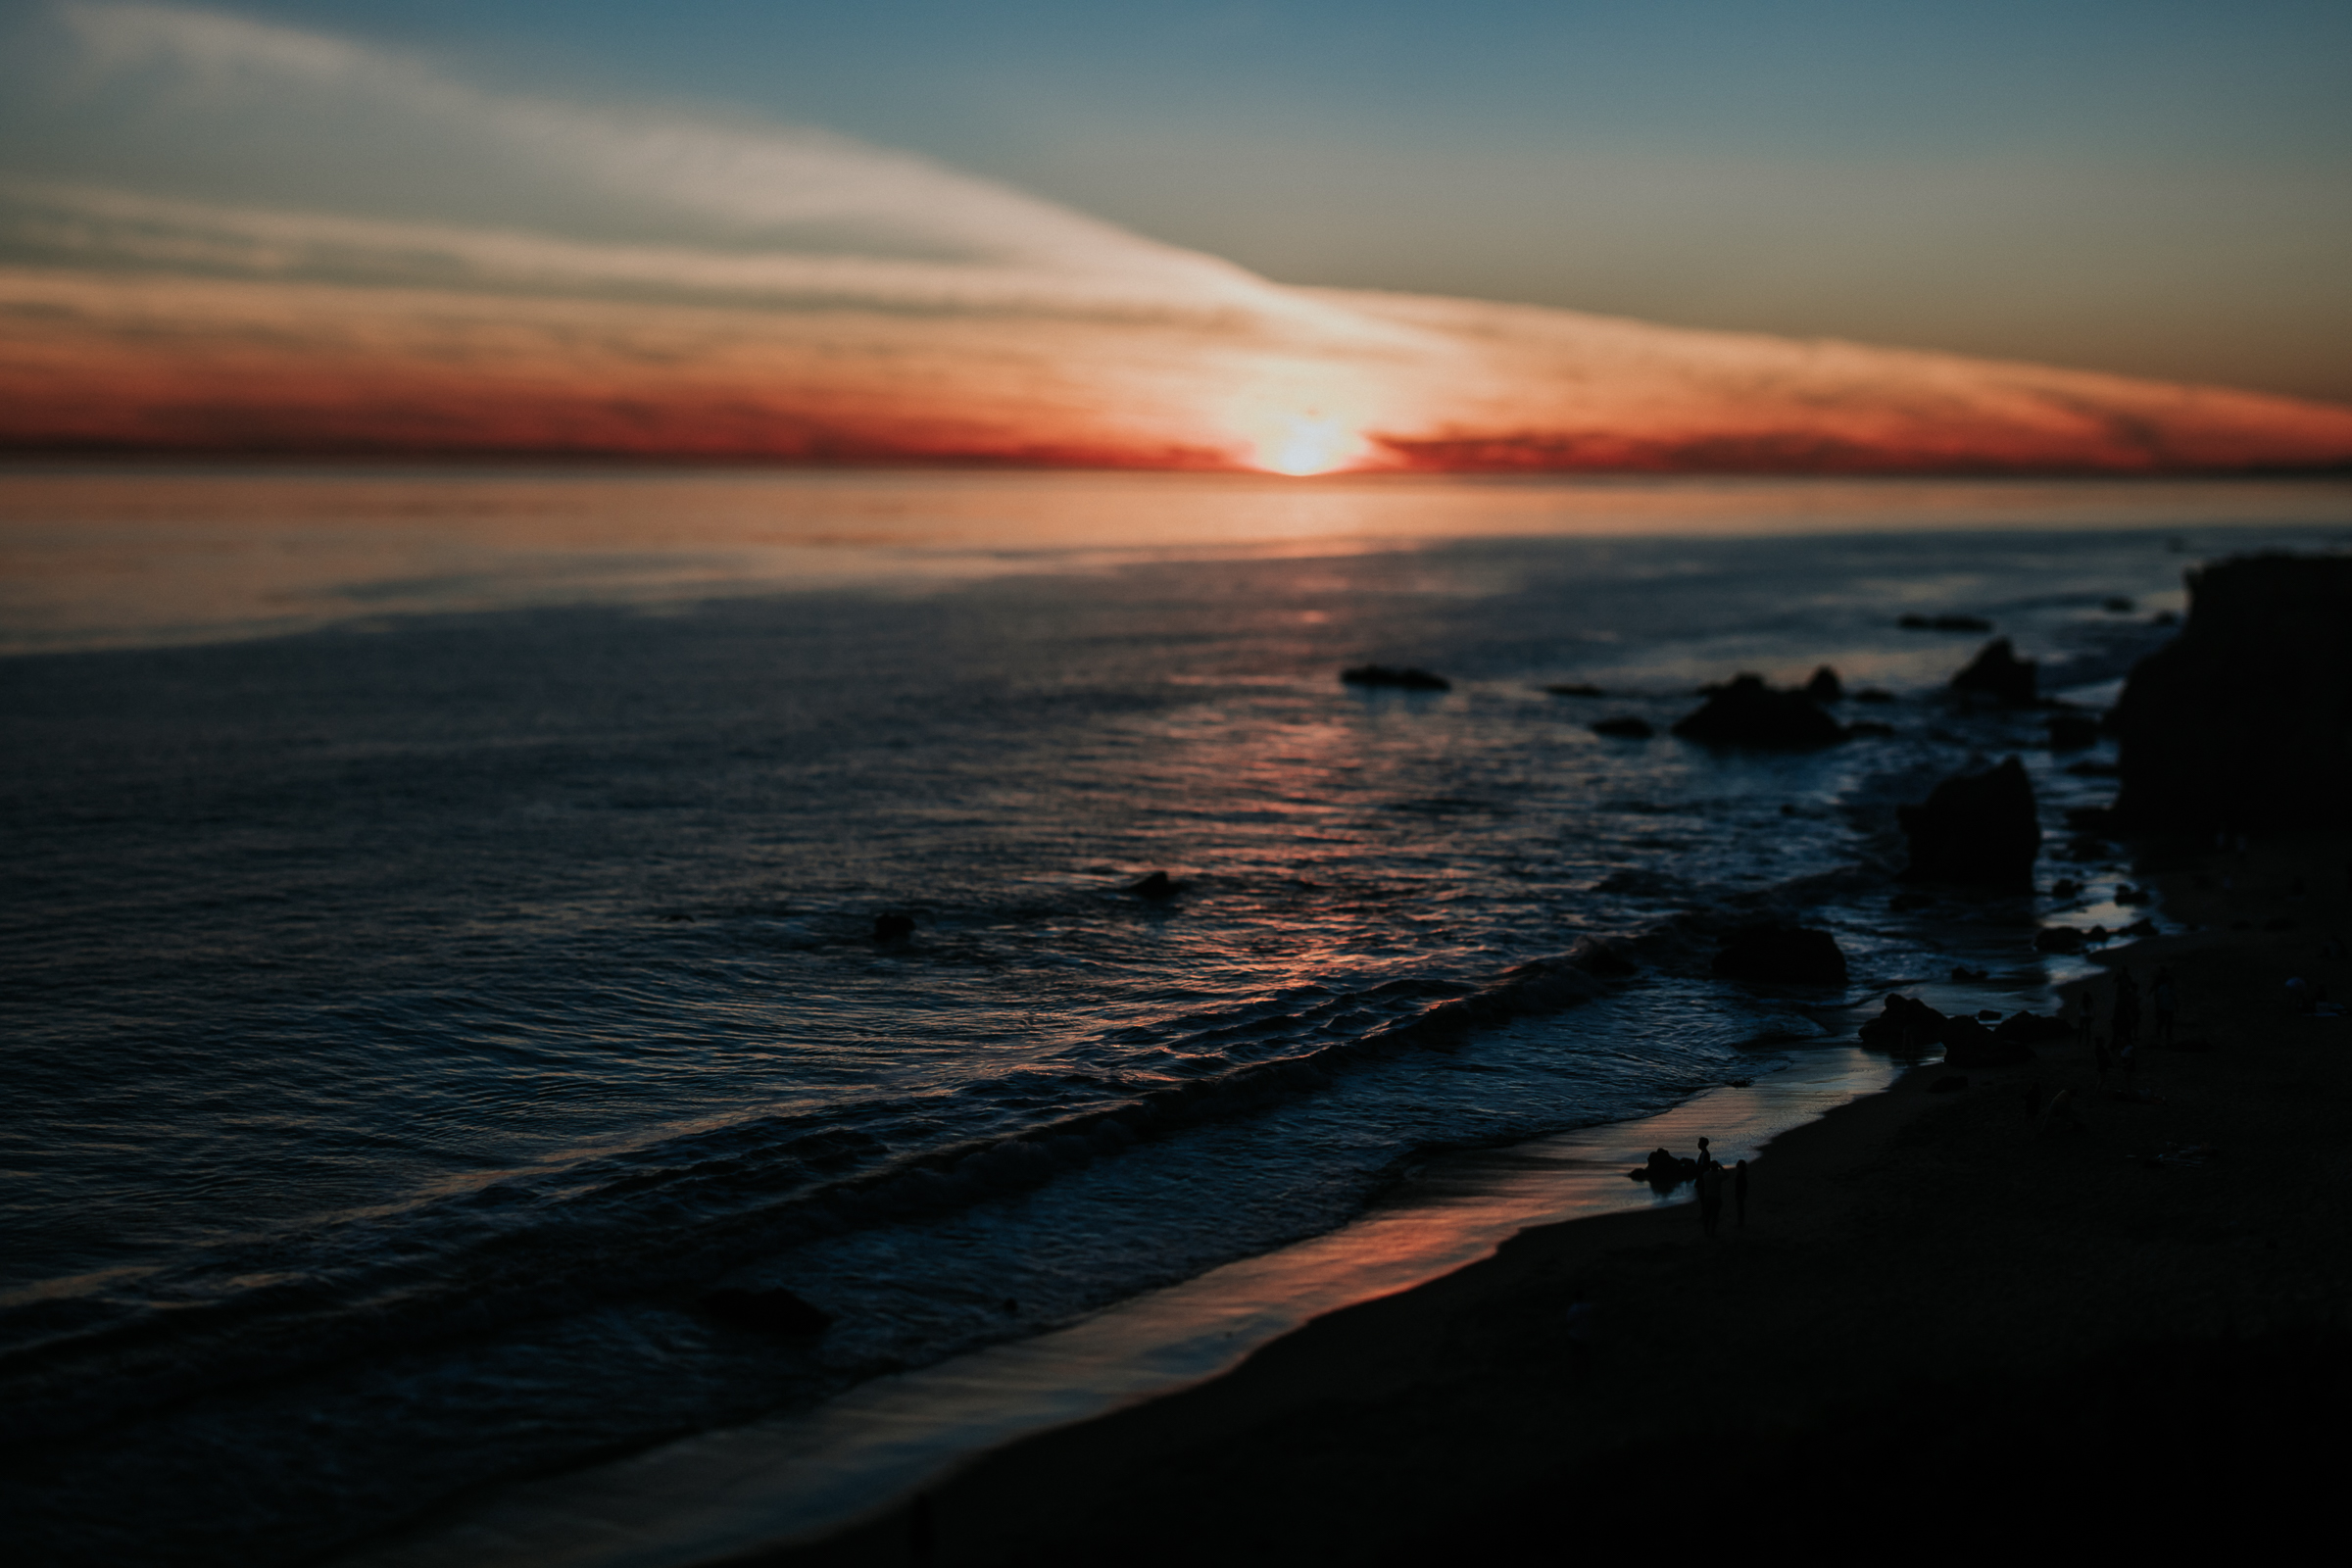 Malibu-El-Matador-State-Beach-Sunset-Engagement-Photos-Los-Angeles-Documentary-Wedding-Photographer-40.jpg